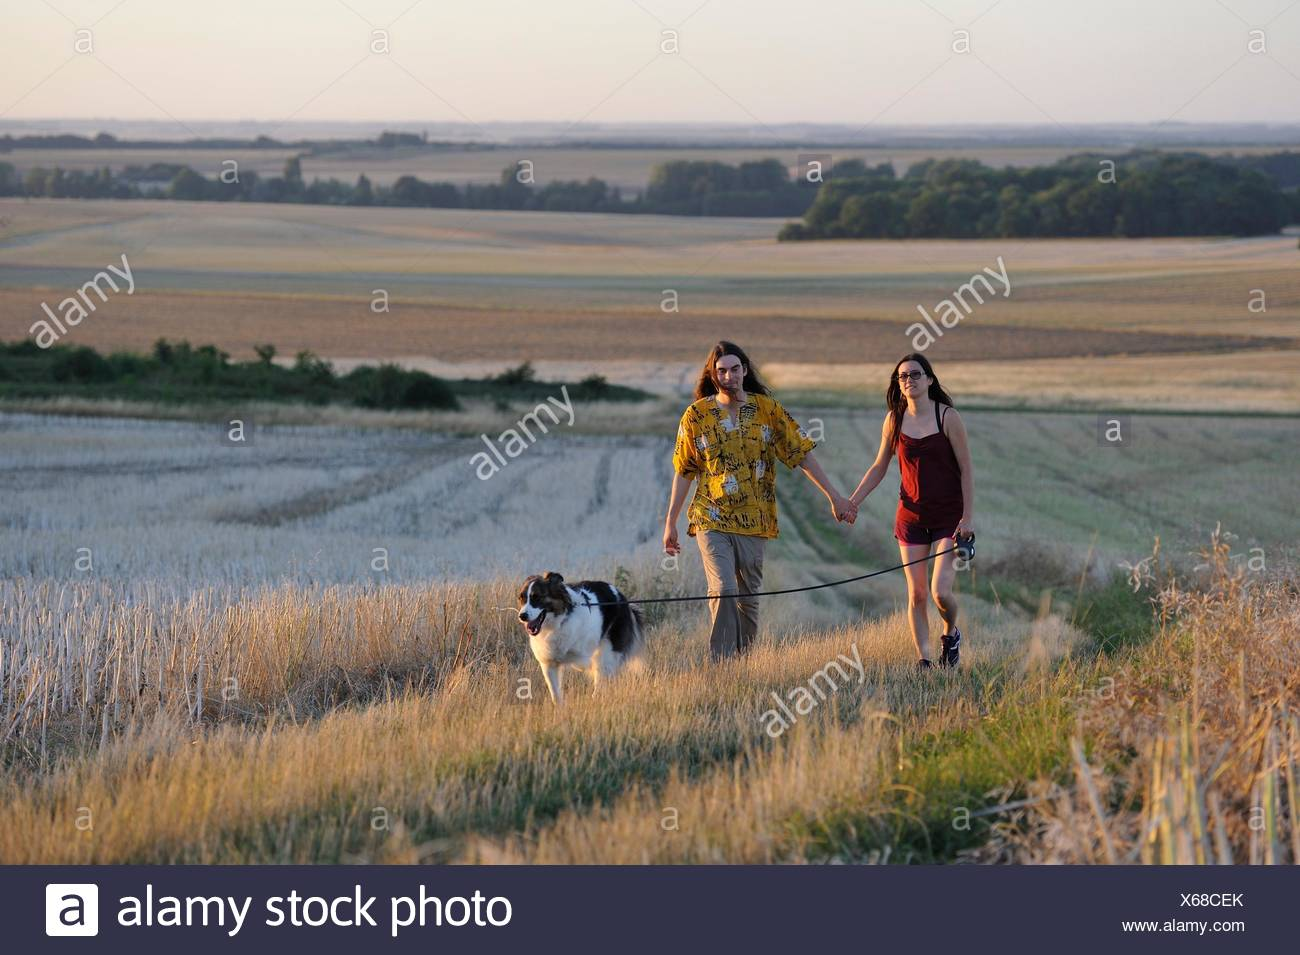 couple of young people walking with a dog around Mittainville, Yvelines department, Ile-de-France region, France, Europe. - Stock Image